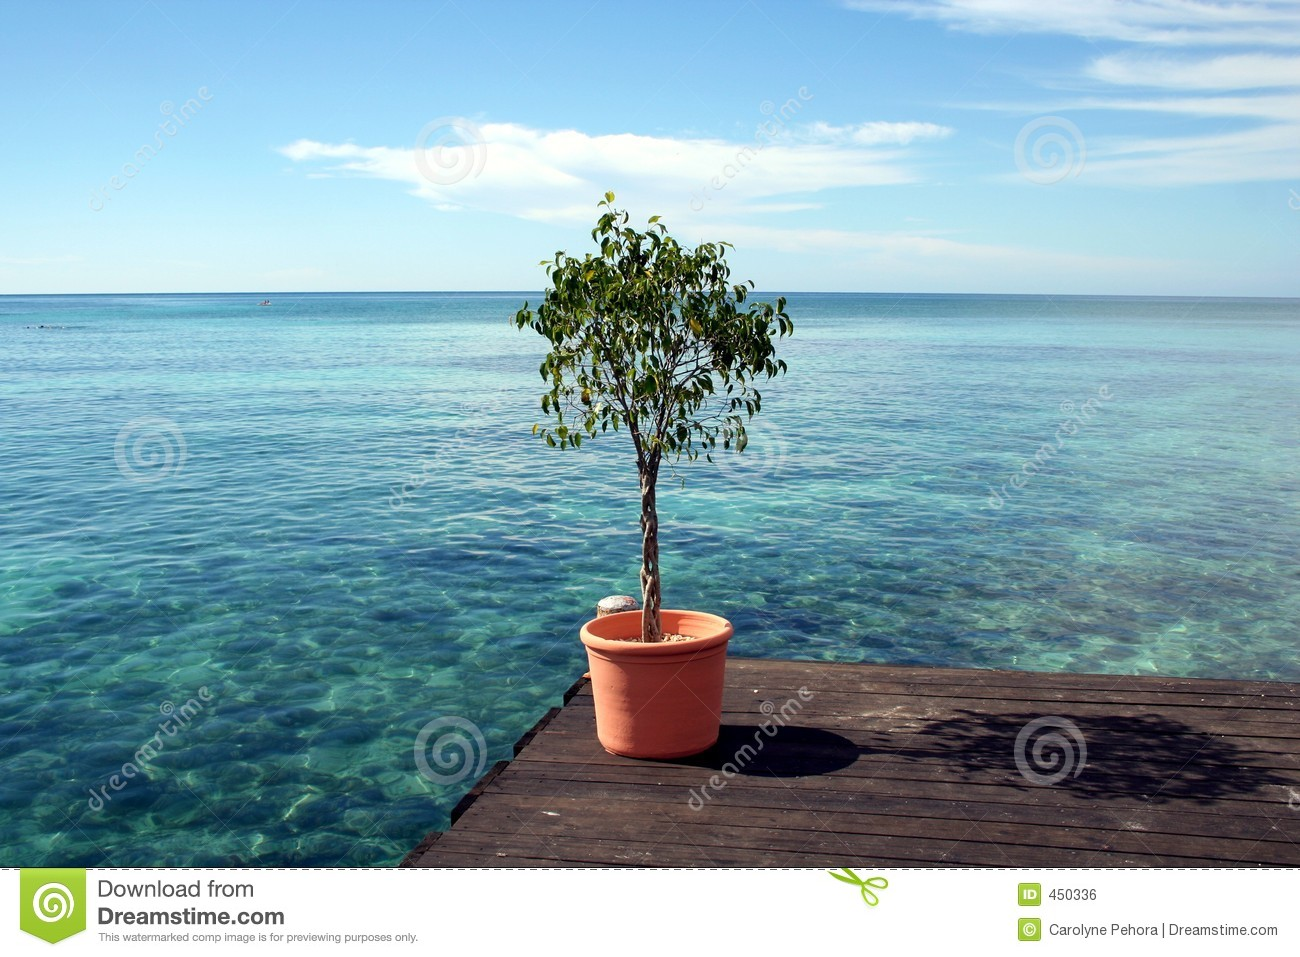 Download Potted Plant stock photo. Image of water, tropics, deck - 450336